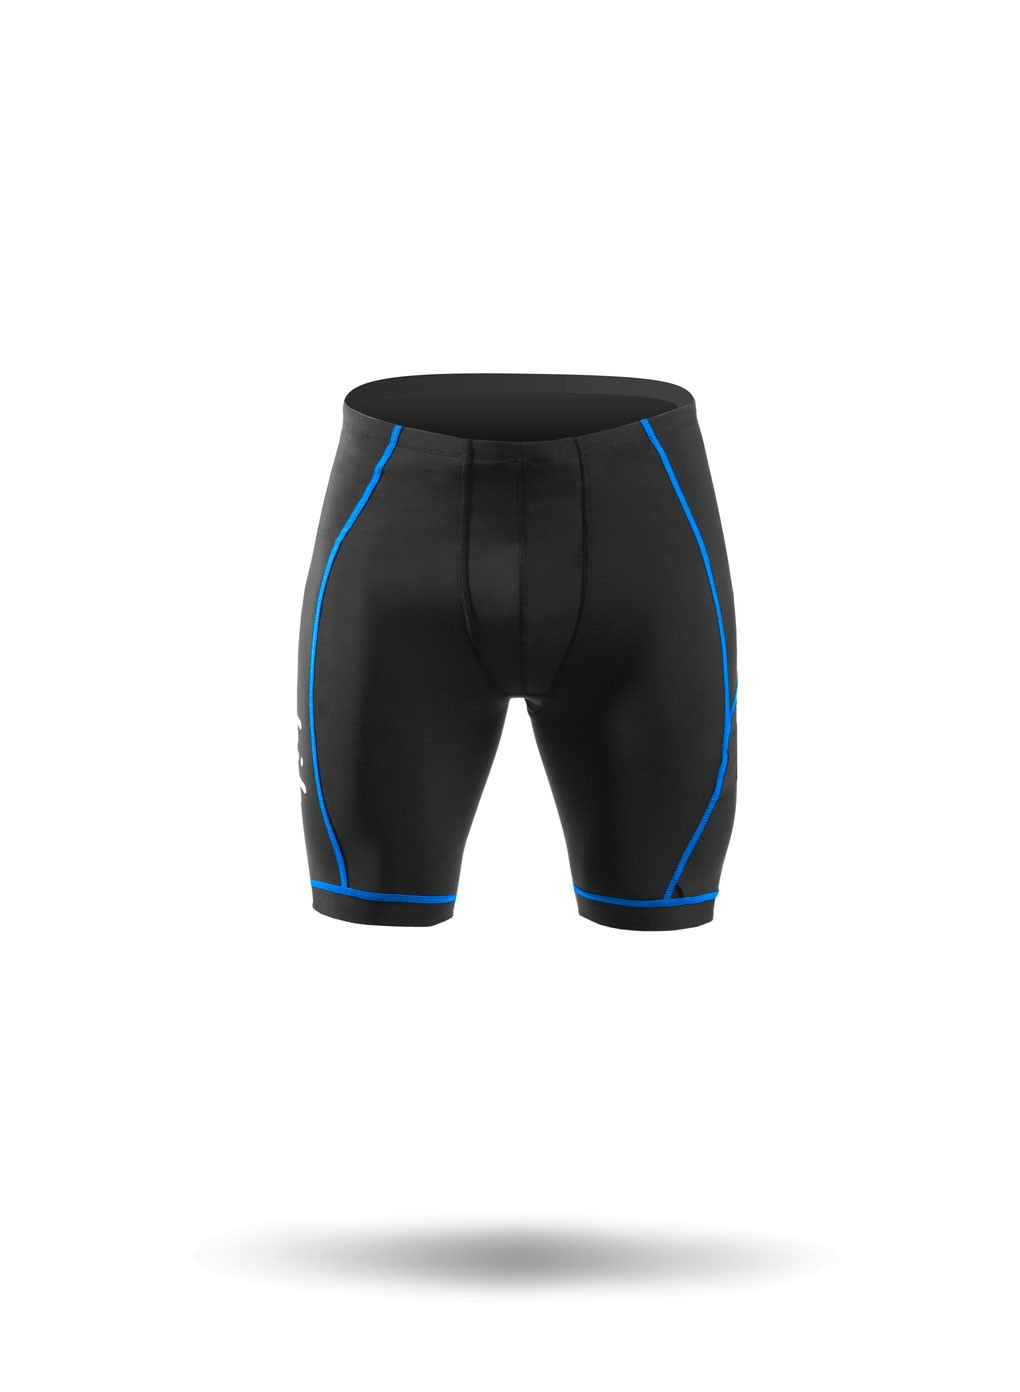 Paddle short Zhik Clint Robinsom mens